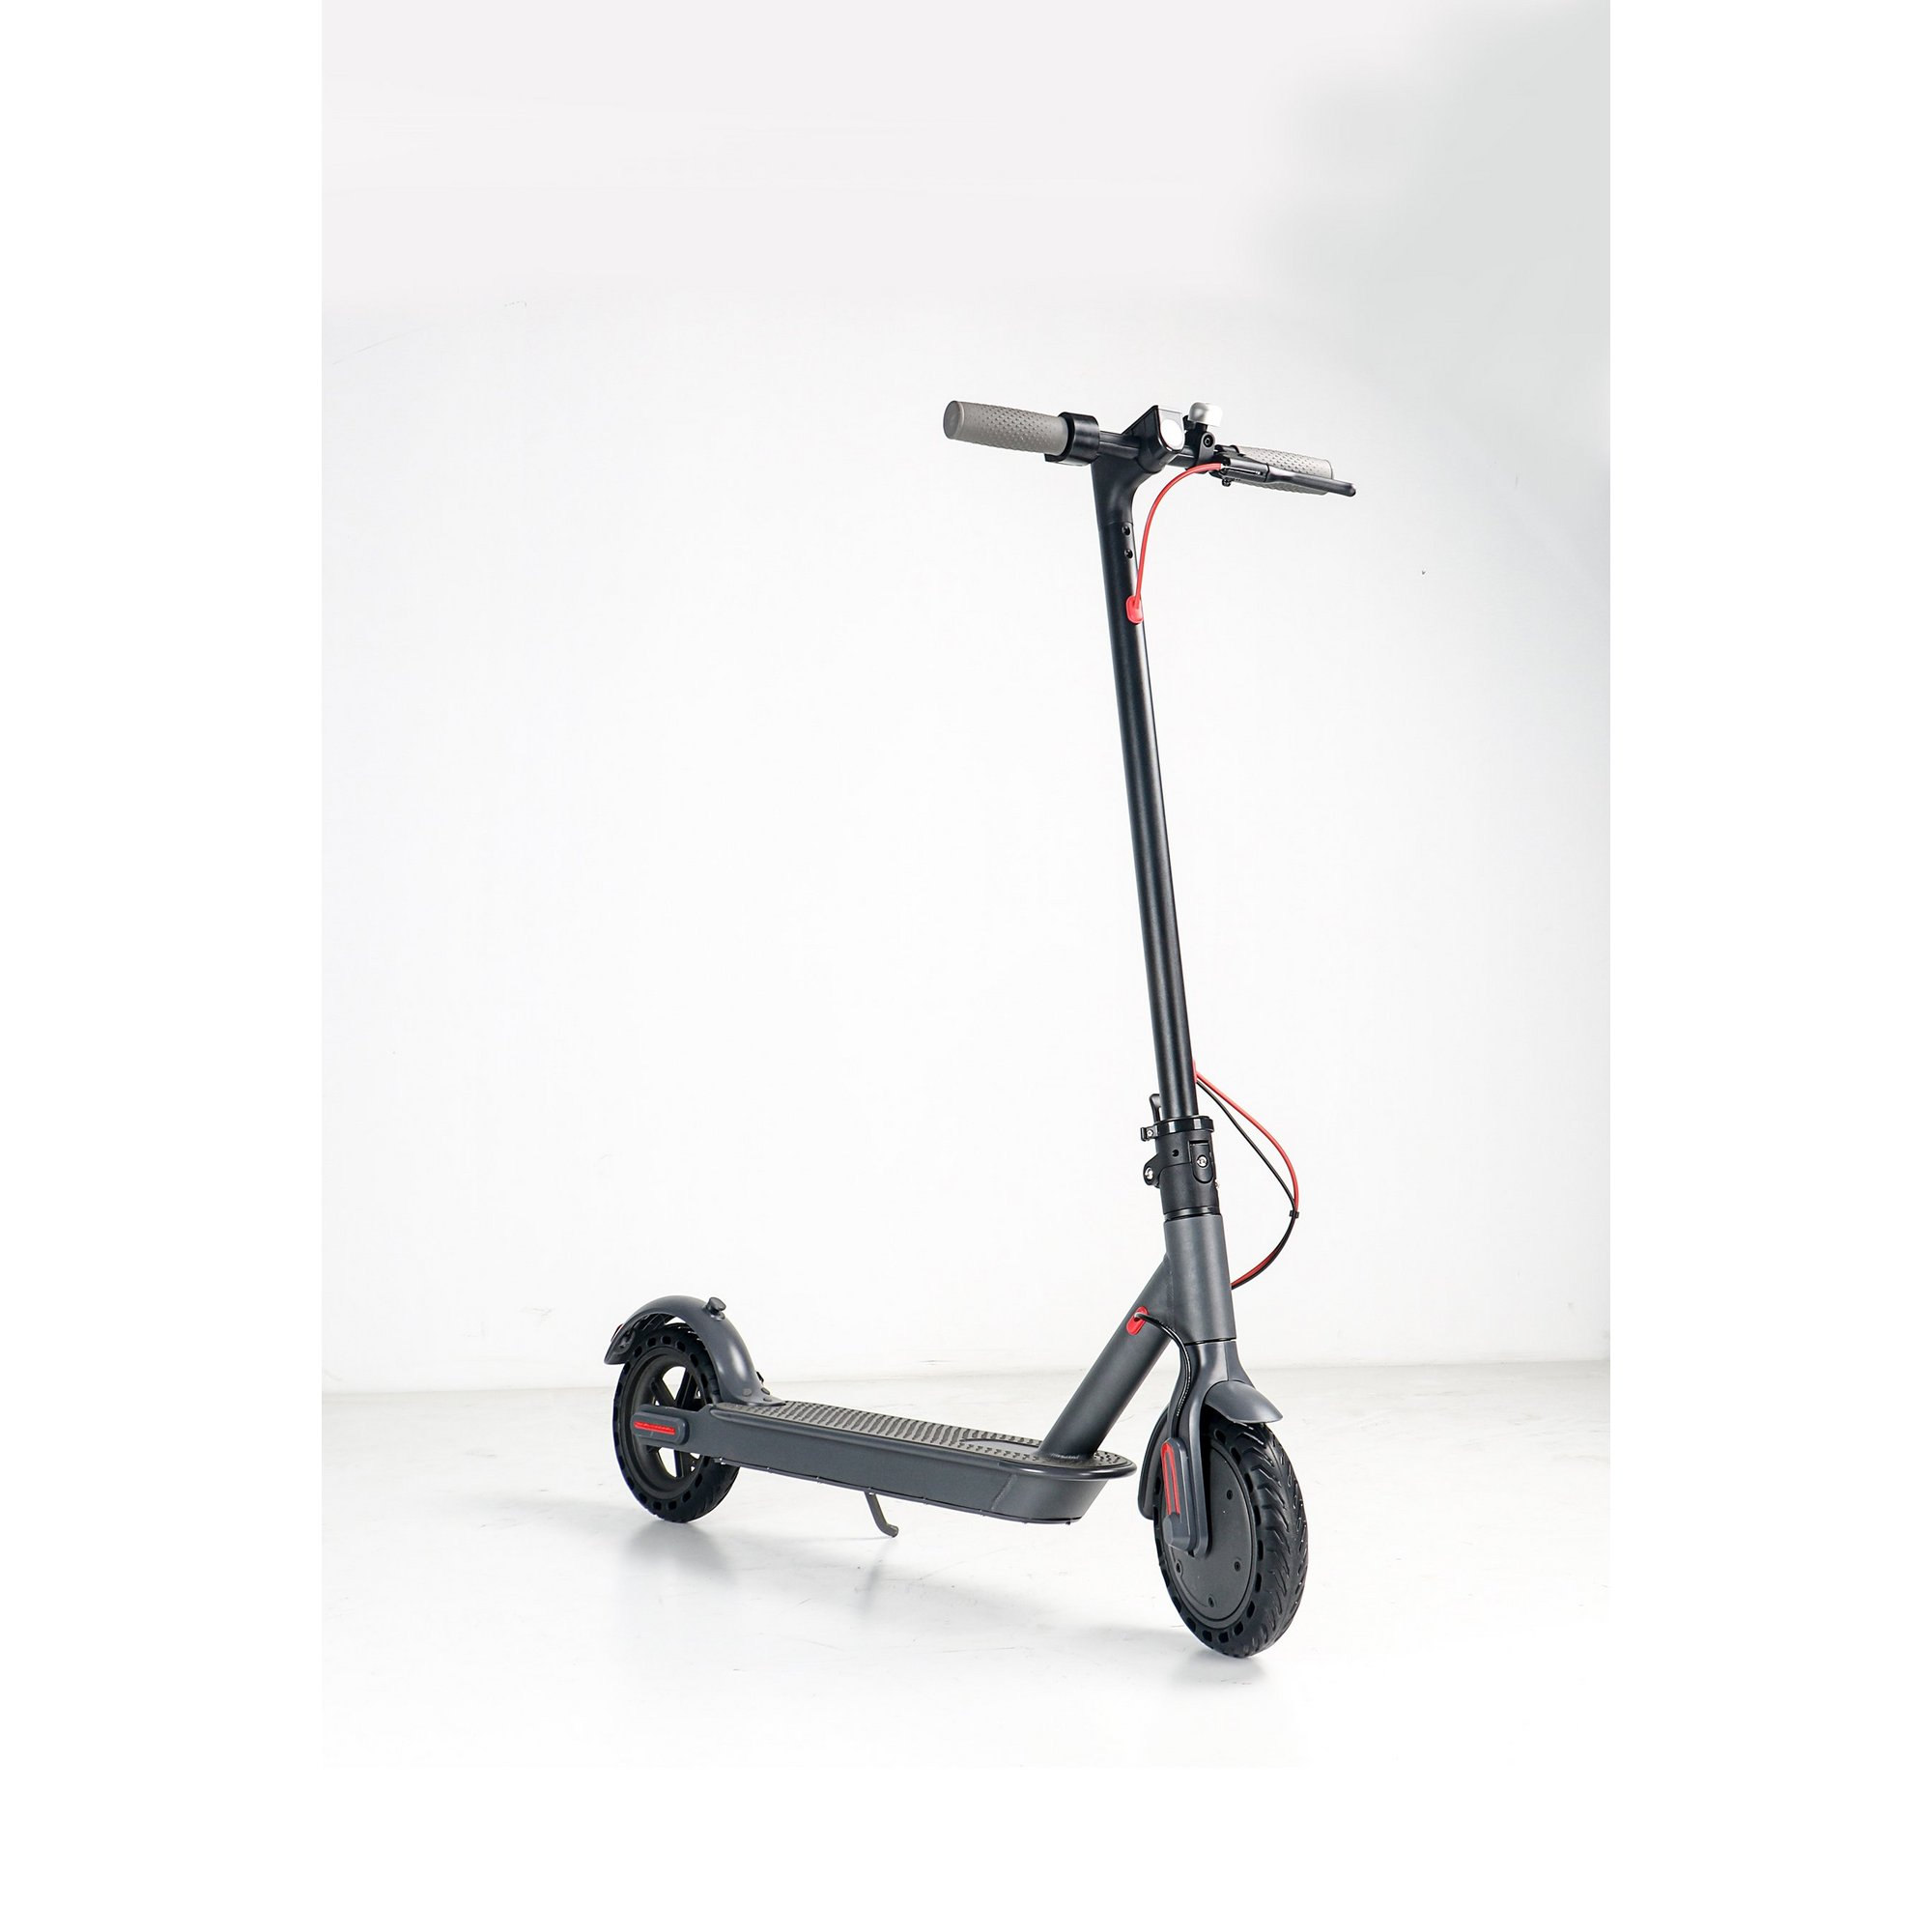 Image of Begin One Debut Electric Foldable Scooter